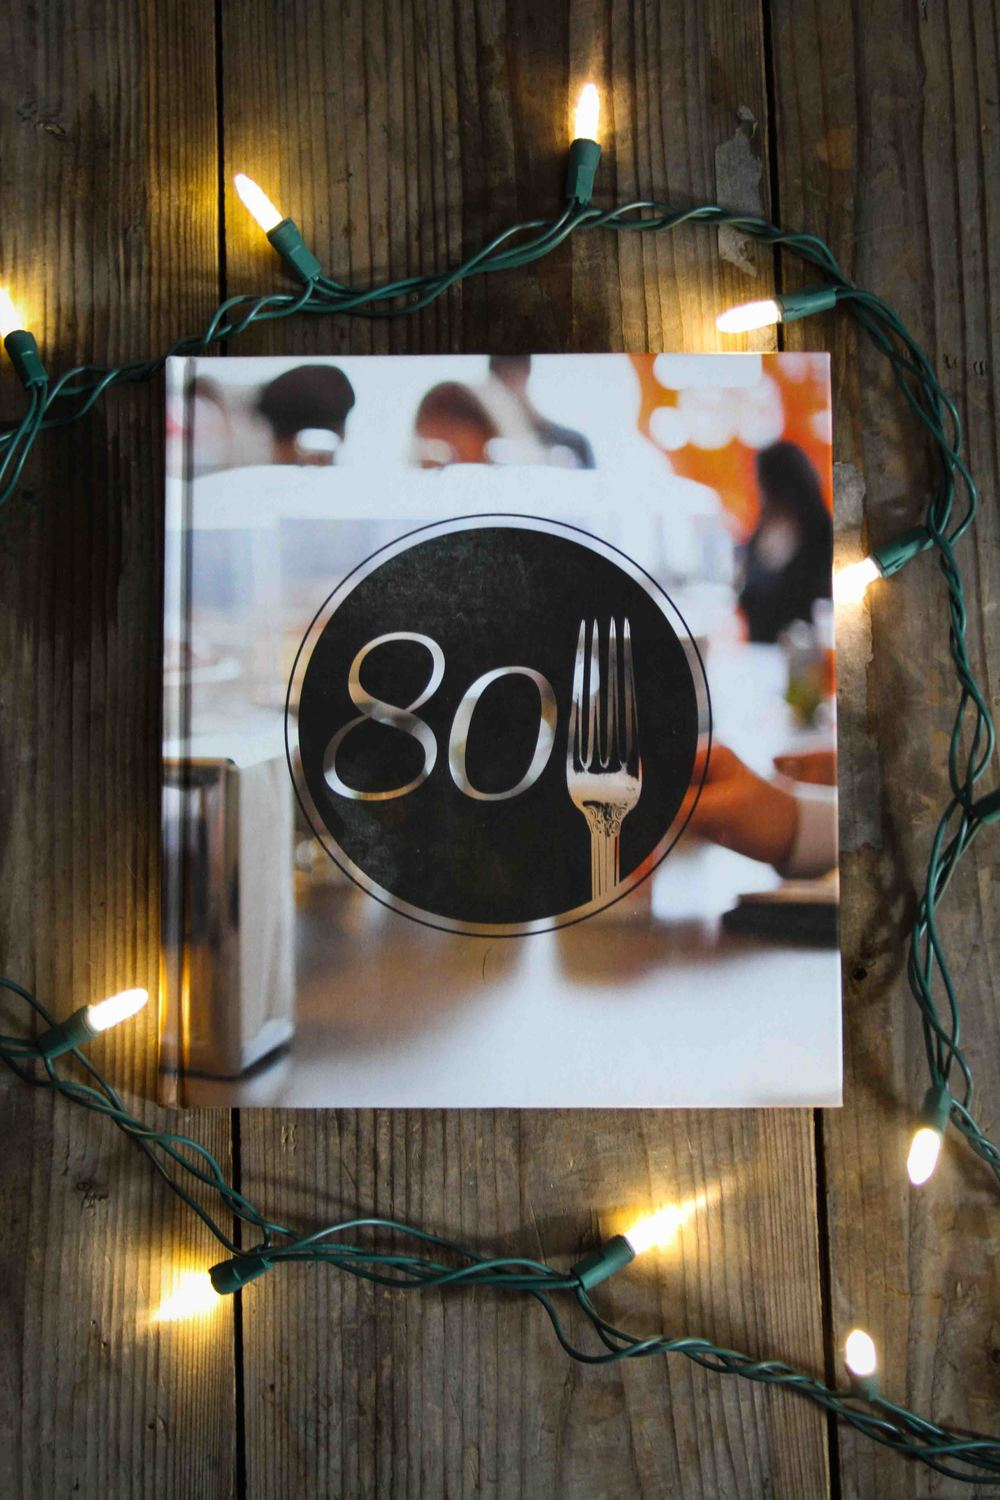 804ork Cookbook ($45) - This stunning cookbook features 68 recipes from 24 of Richmond's most loved restaurants. The book is filled with gorgeous pictures and wonderful stories about the featured local chefs. You can purchase the book at these retailers.